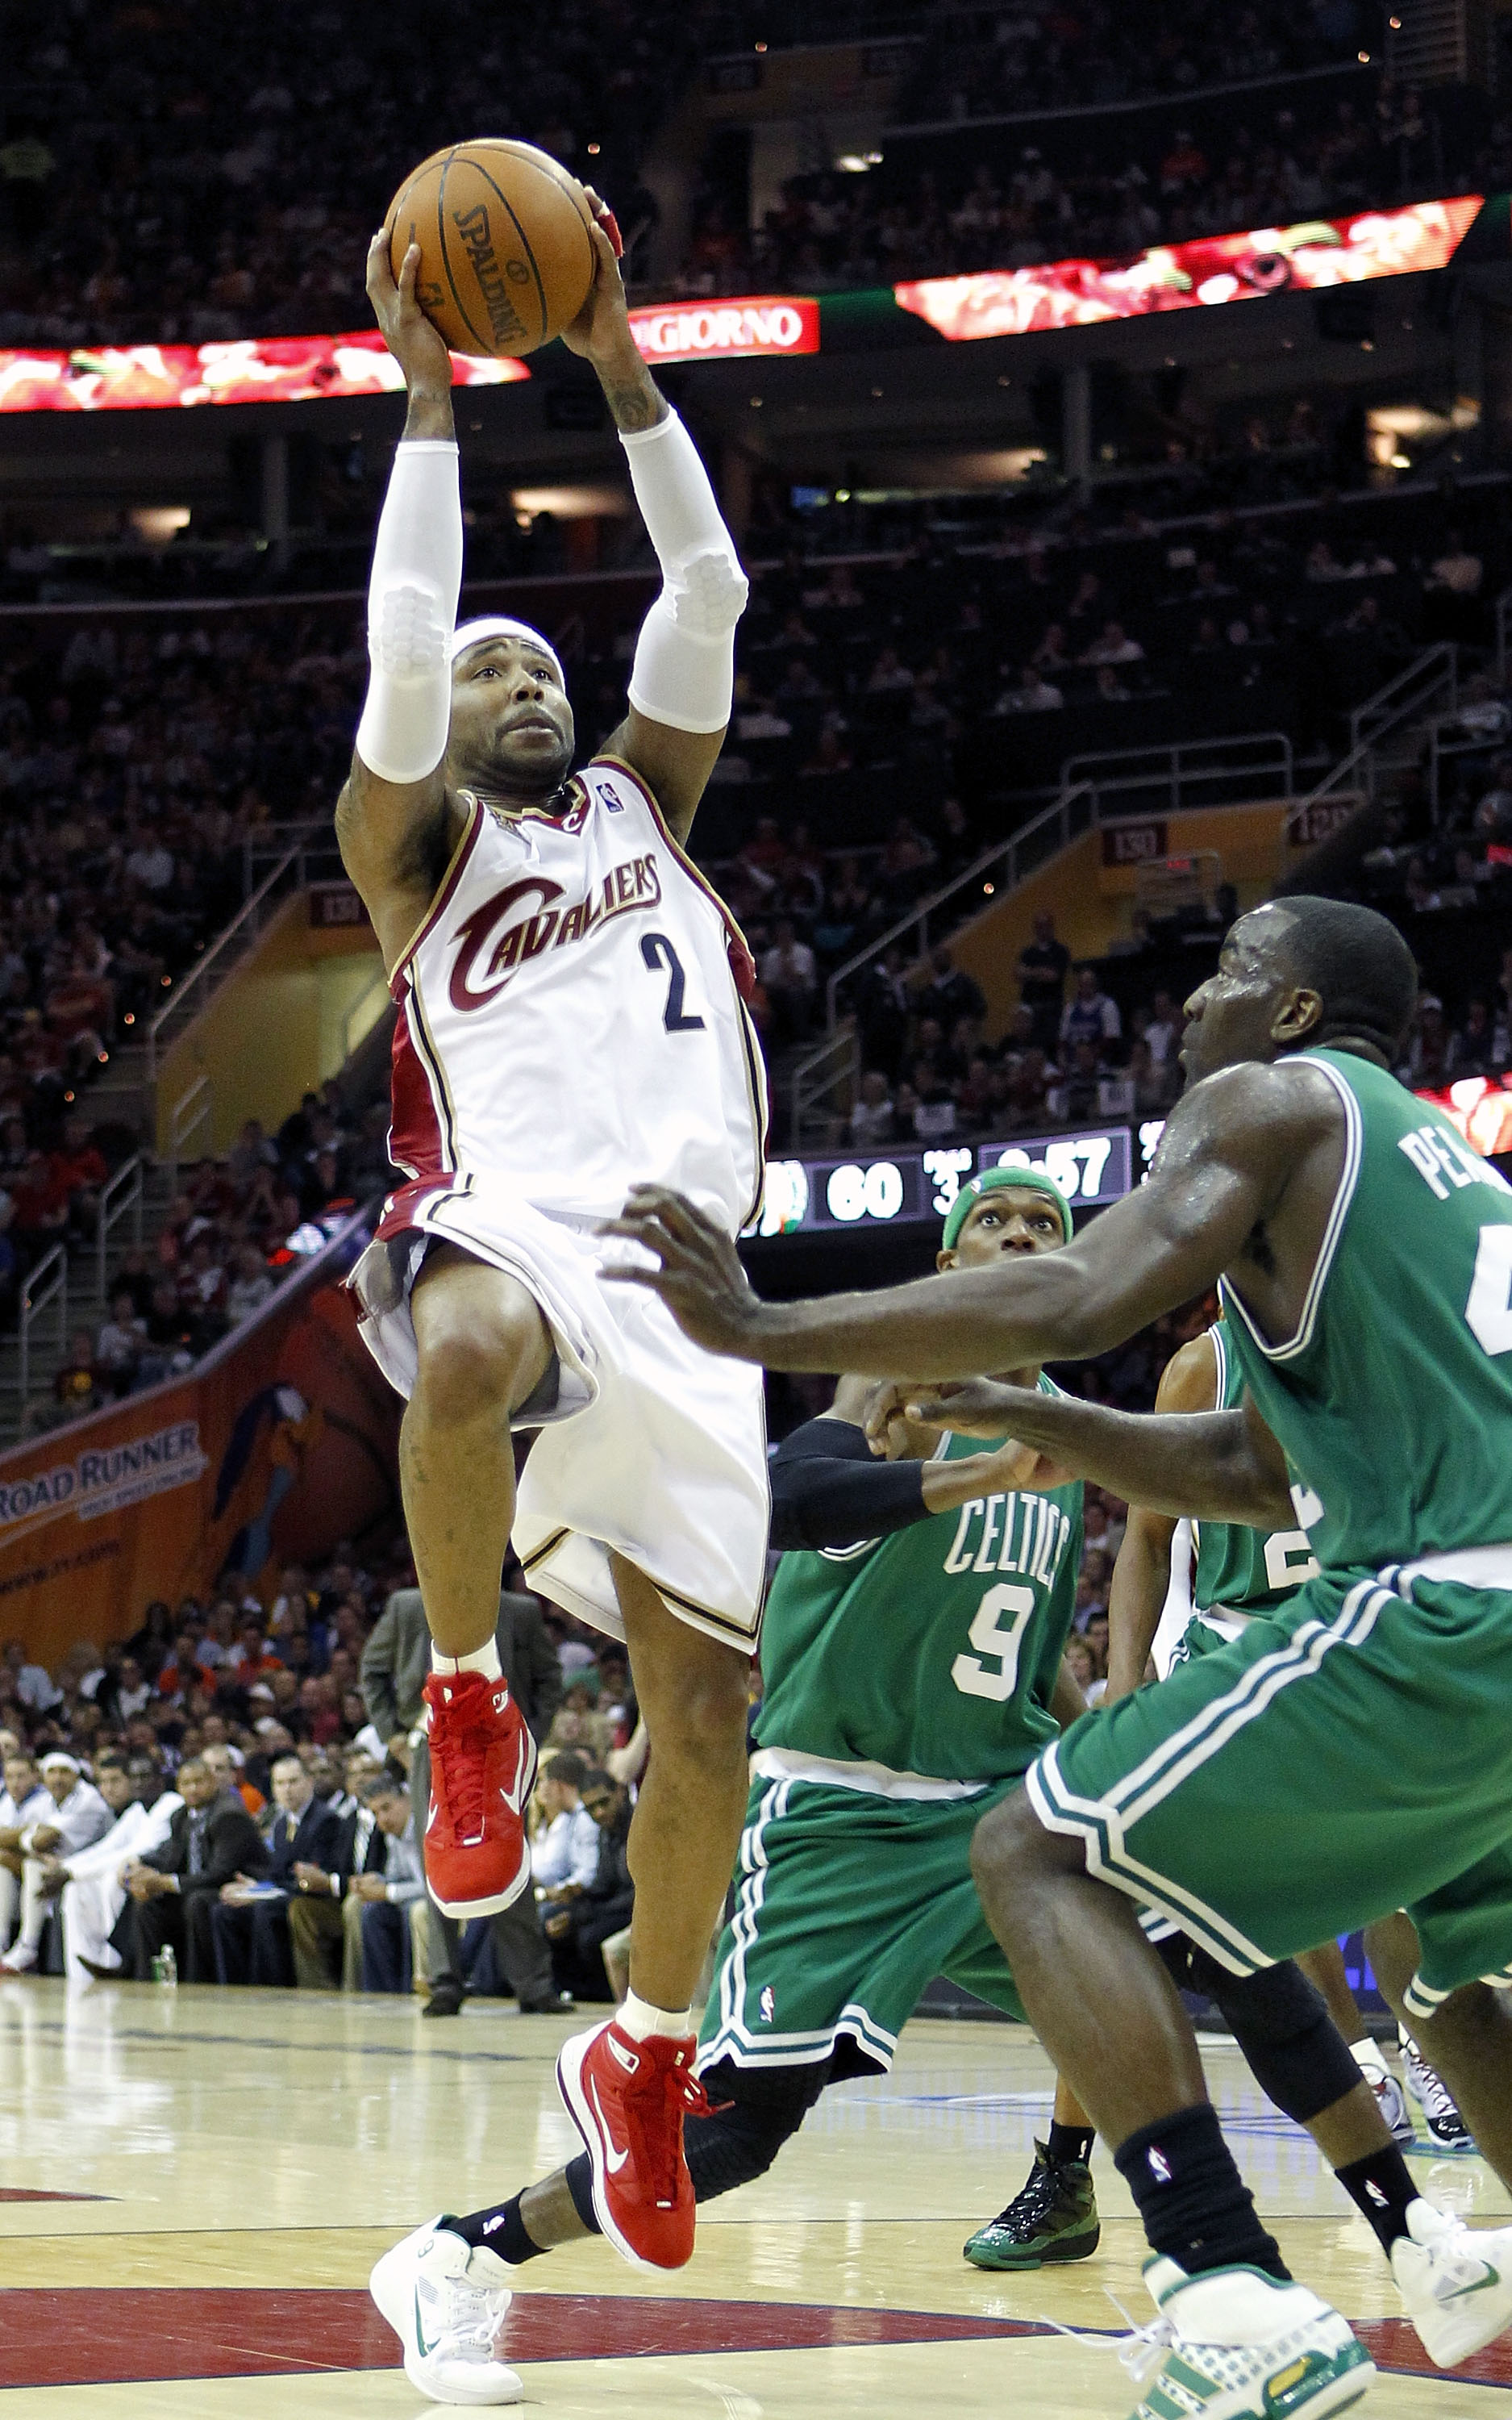 CLEVELAND - MAY 01:  Mo Williams #2 of the Cleveland Cavaliers gets a shot off over Kendrick Perkins #43 of the Boston Celtics during Game One of the Eastern Conference Semifinals during the 2010 NBA Playoffs at Quicken Loans Arena on May 1, 2010 in Cleve